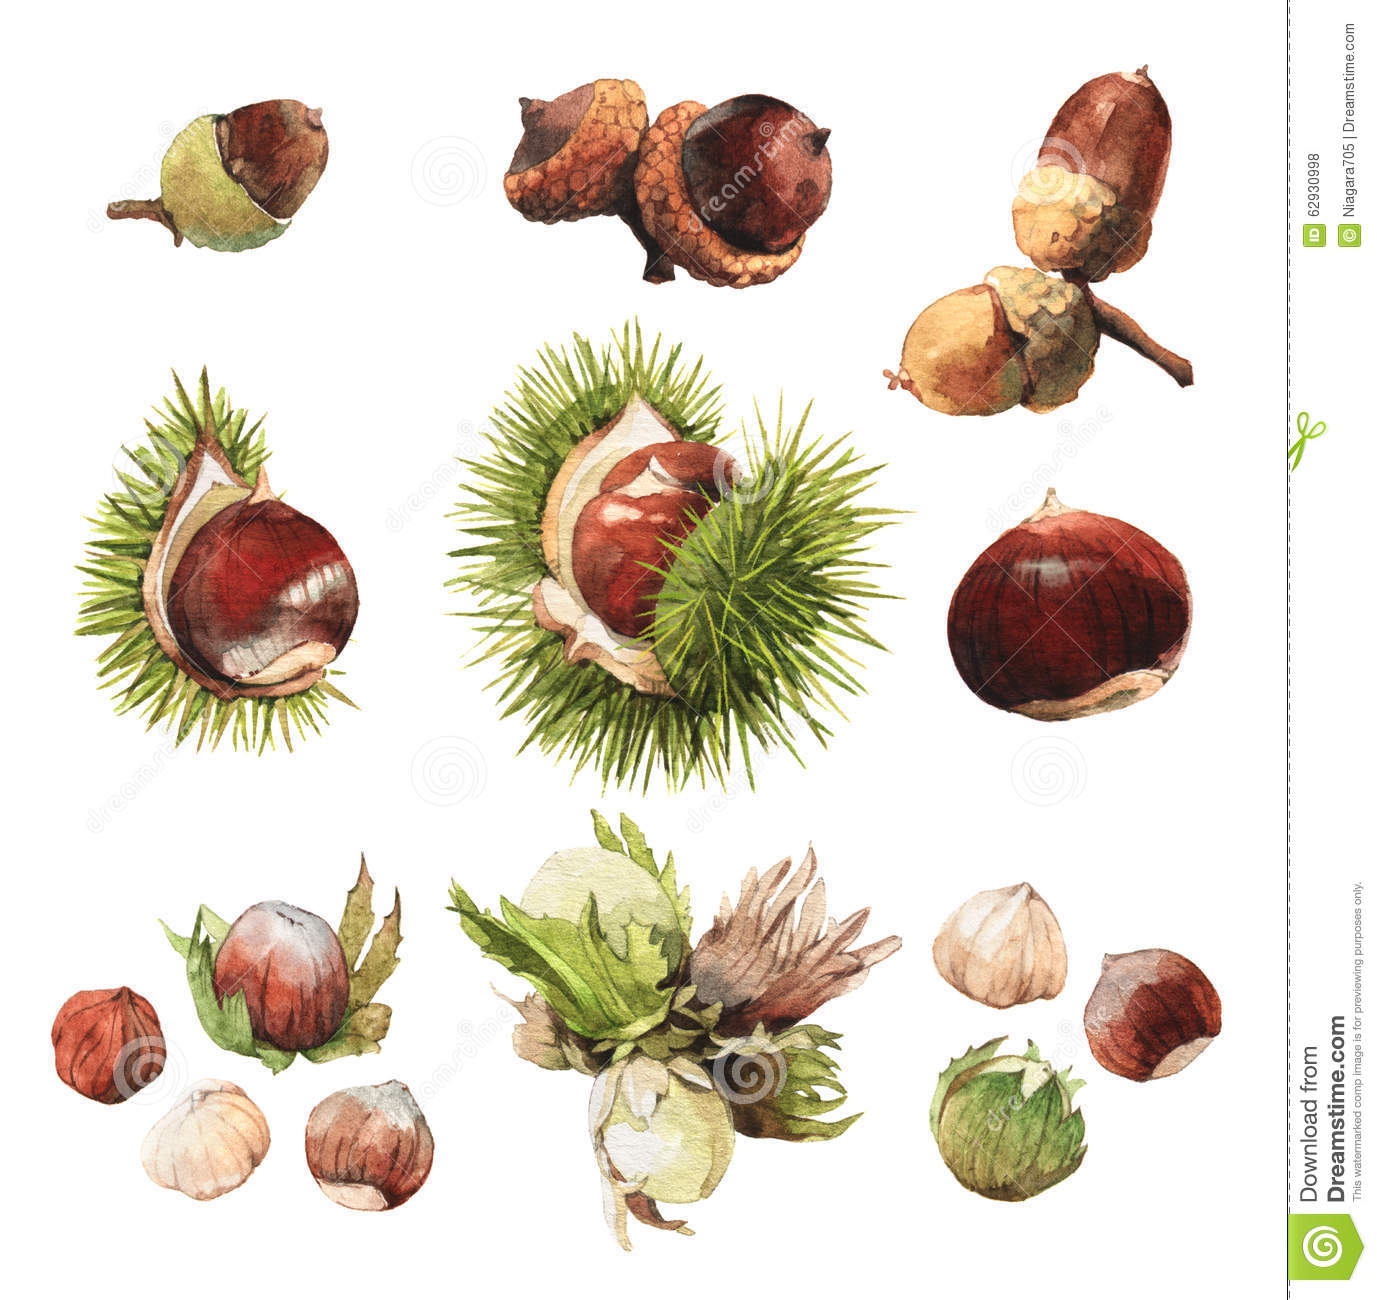 Watercolour Clip Art Illustrations Of True Nuts Stock Illustration.